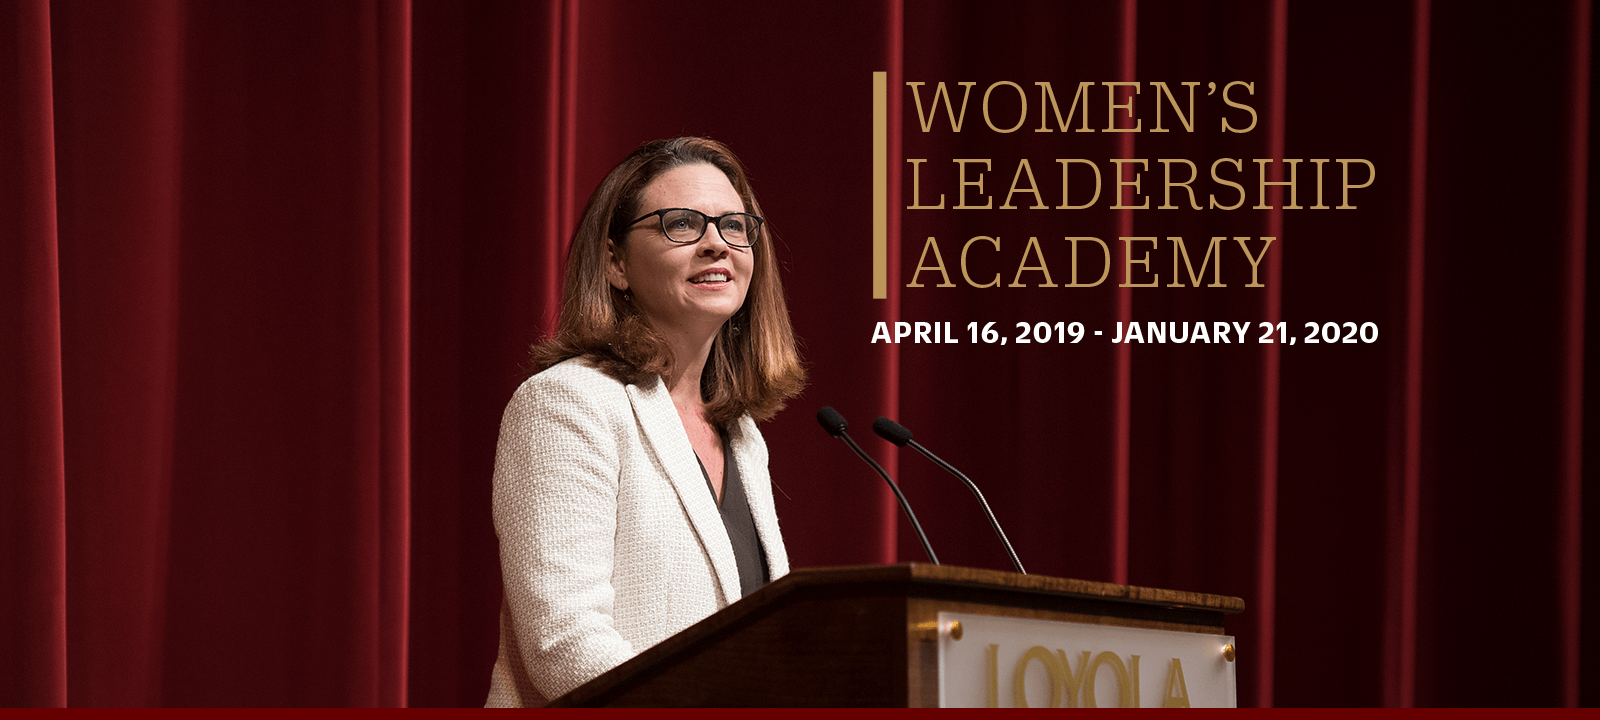 Tania Tetlow welcomes you to the new Women's Leadership Academy